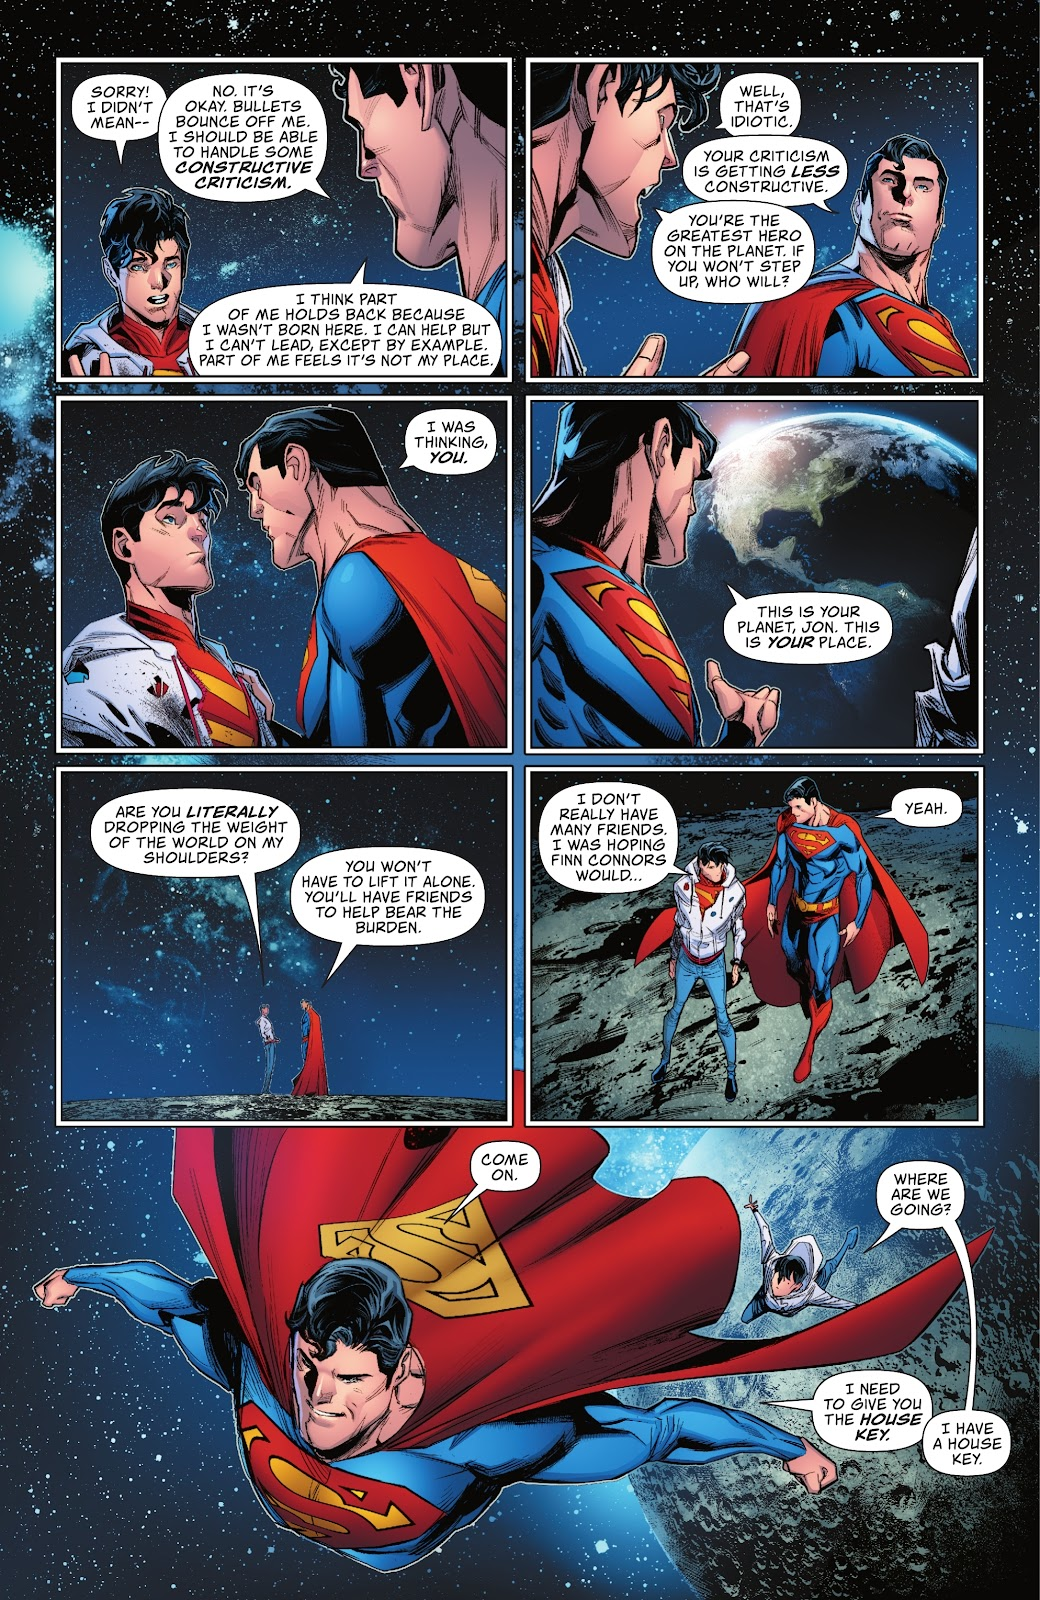 Why Superman Did Not Do More For The World